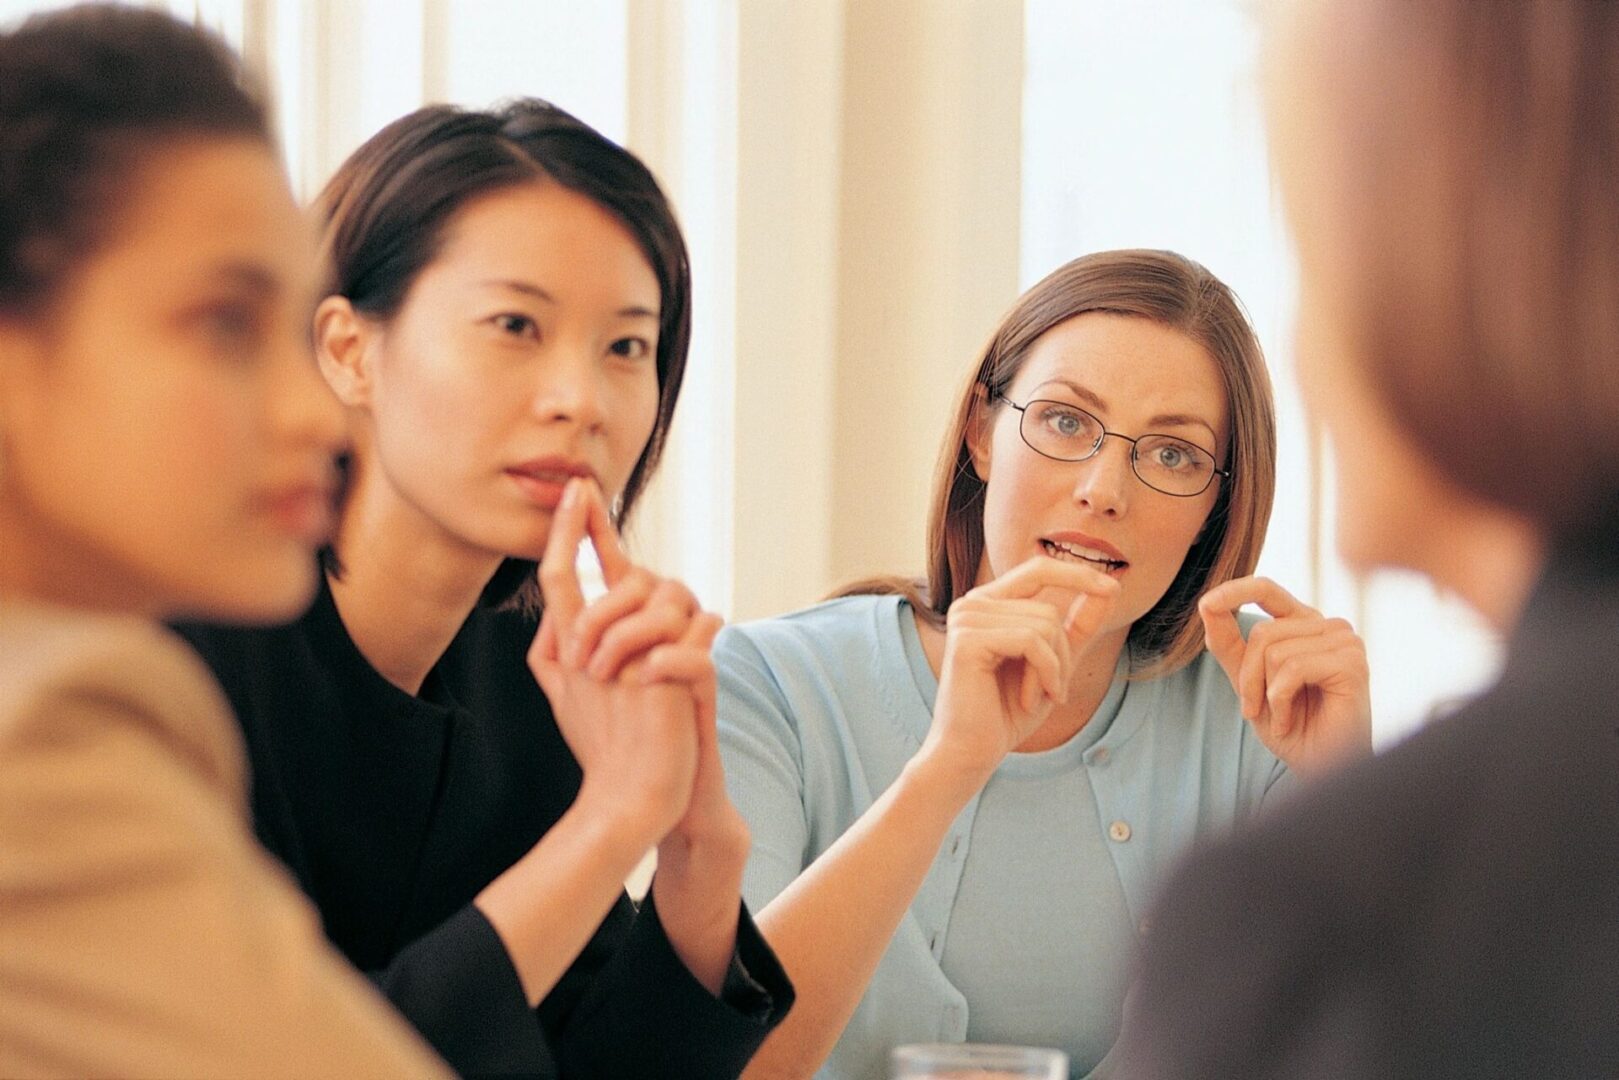 A group of women deep in discussion